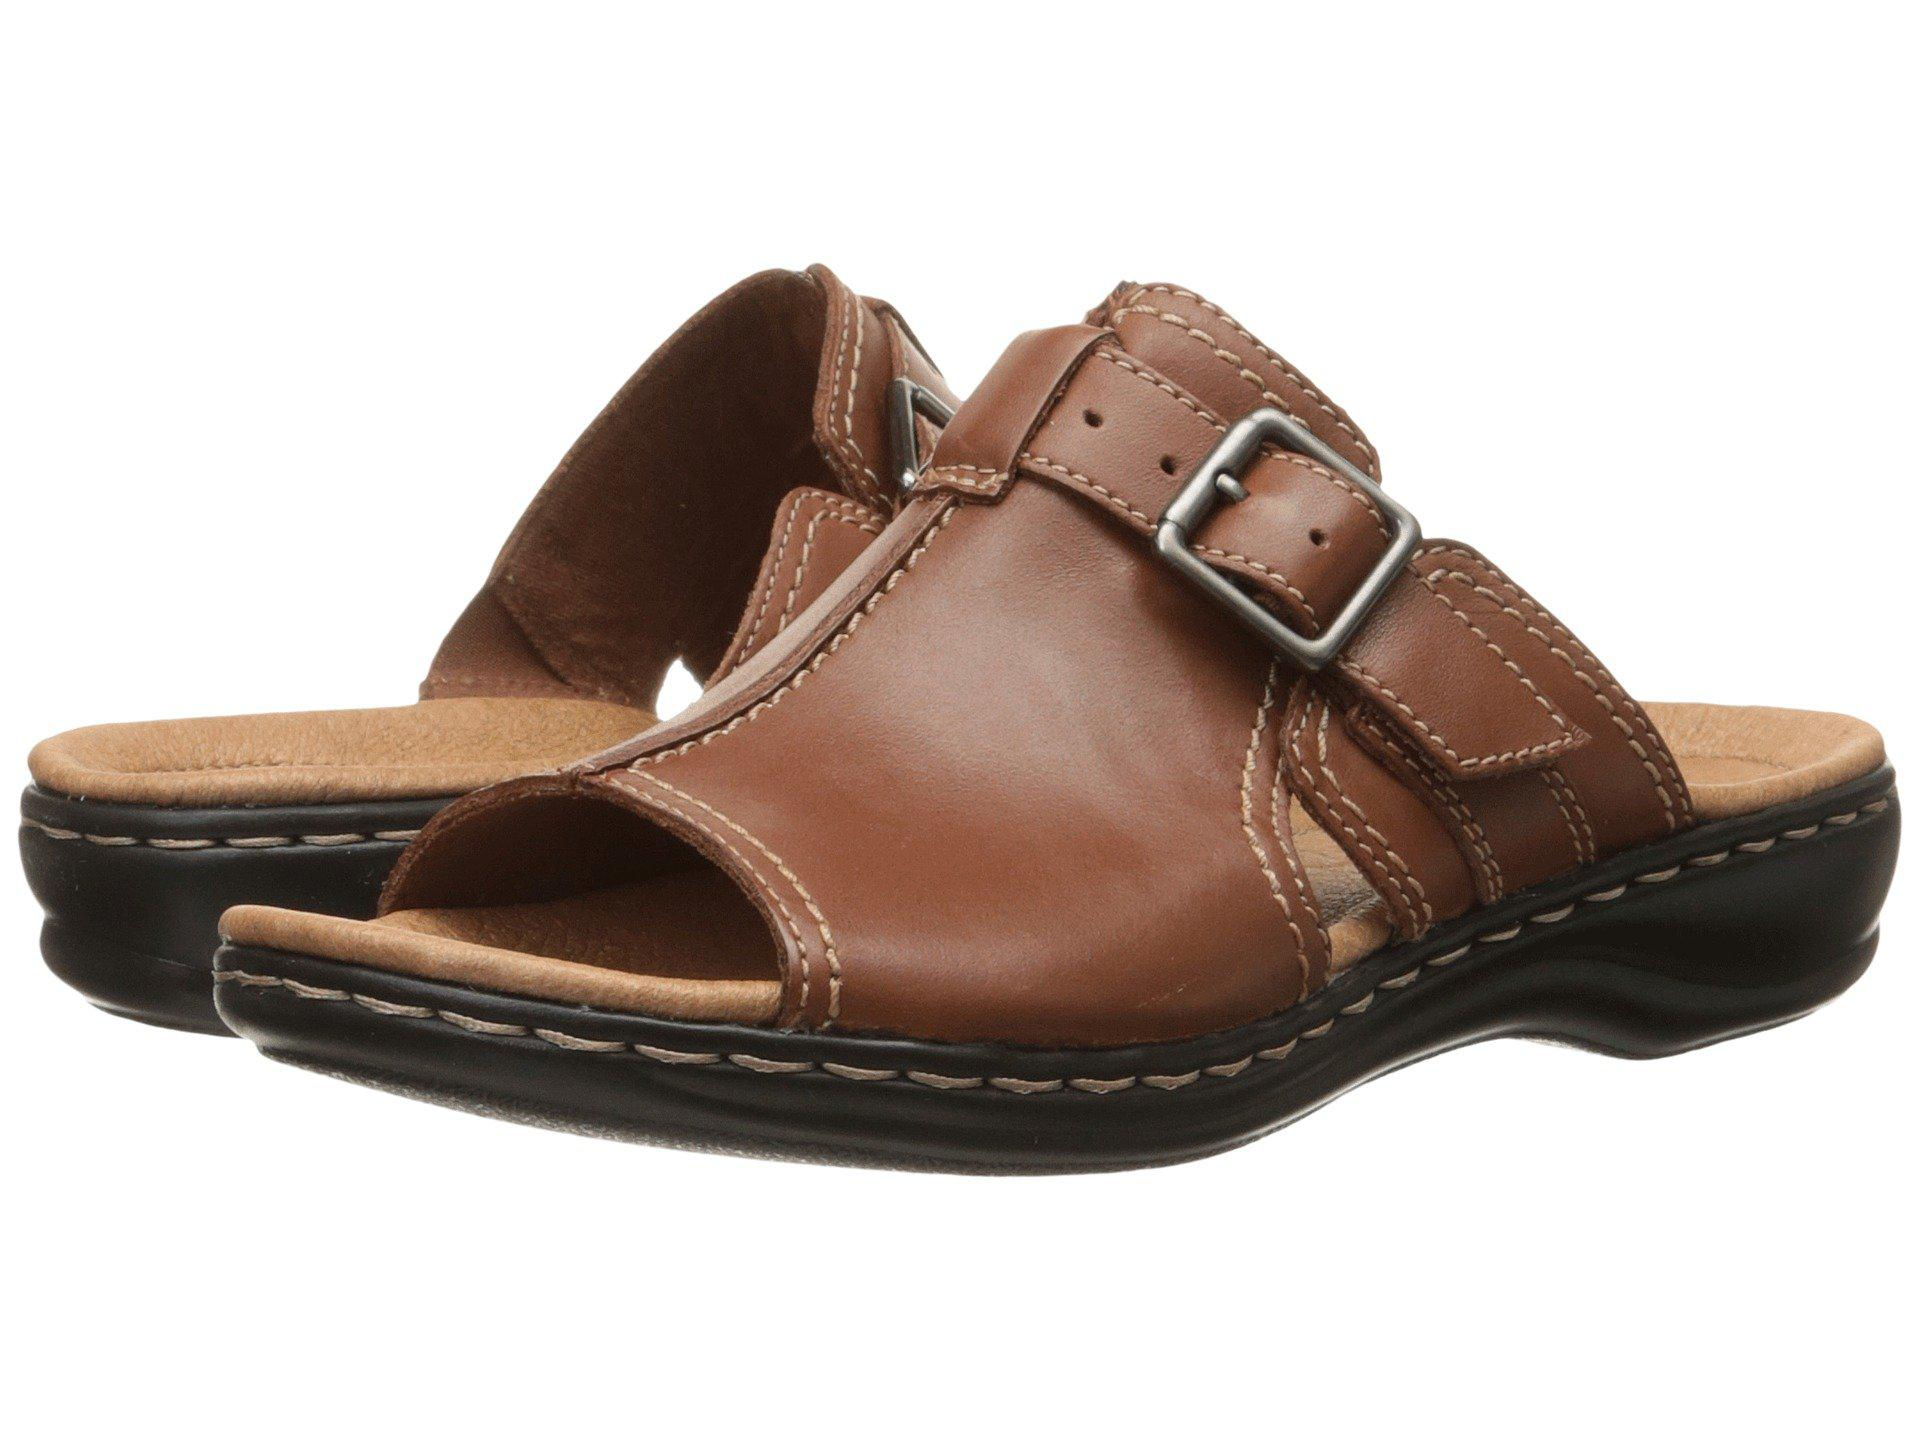 4f6d0f9773f7 Lyst - Clarks Leisa Gianna in Brown